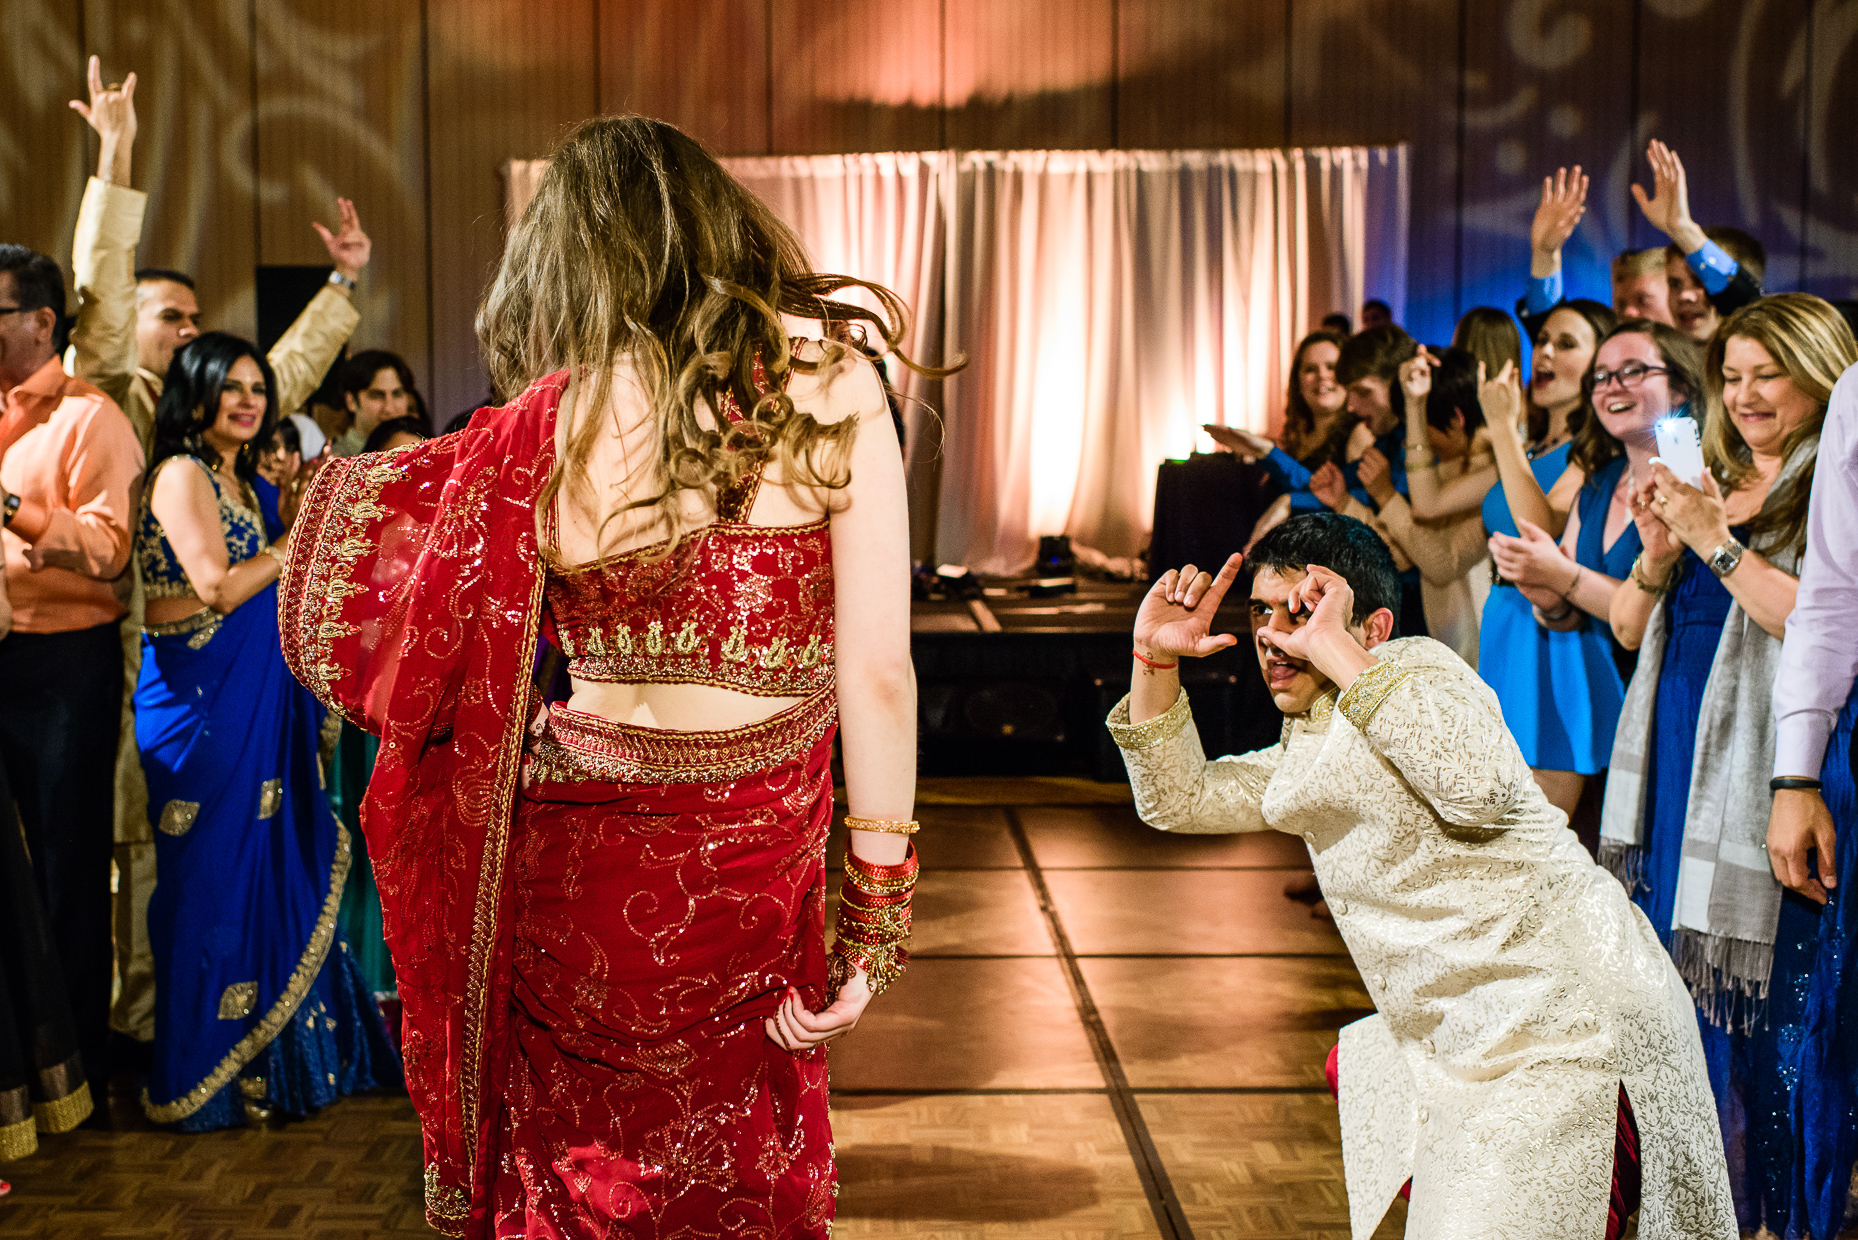 Austin-Wedding-Photographer-Hindu-Lost-Pines-Hyatt-Reception-dancing